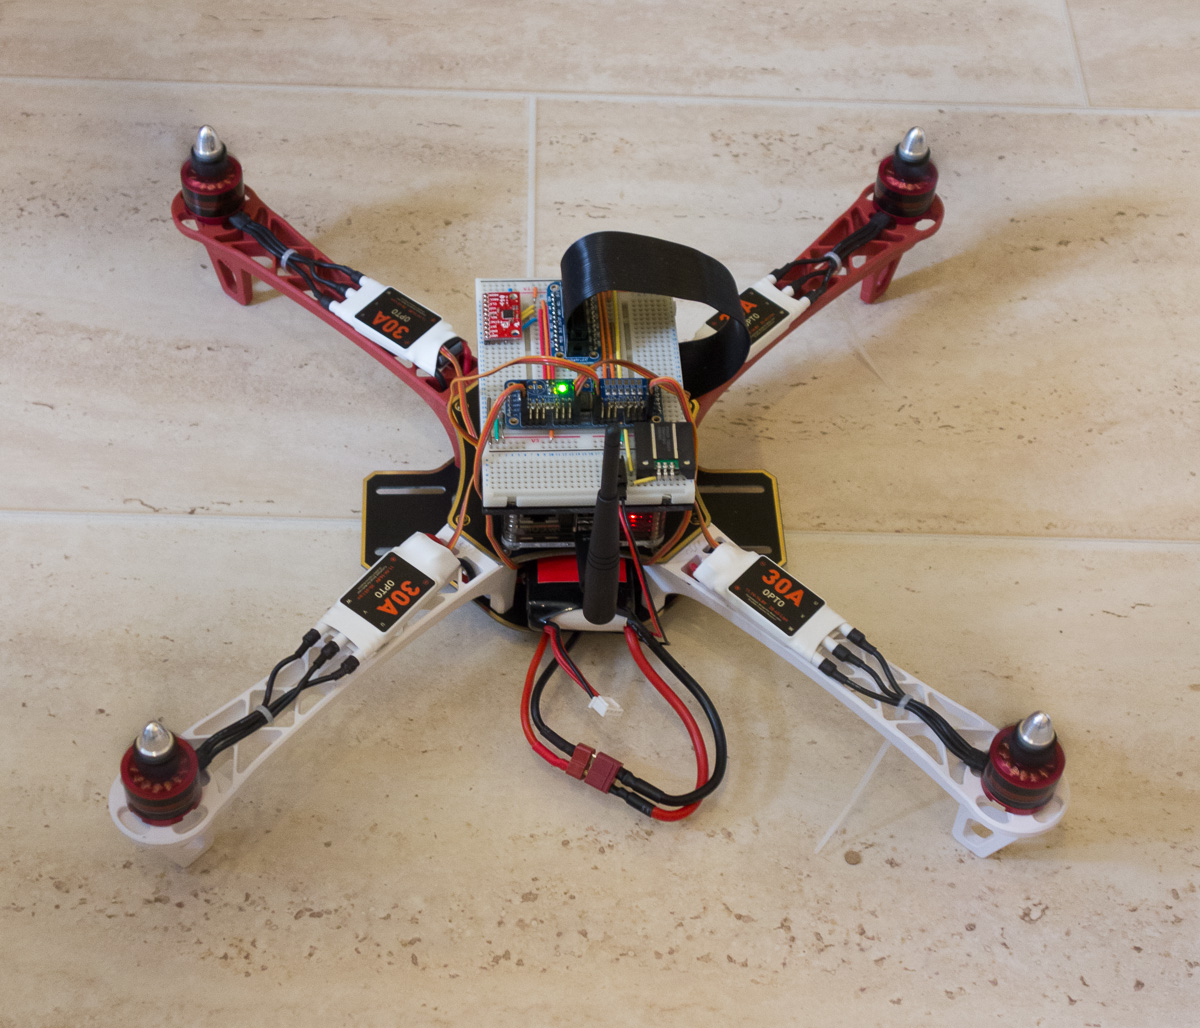 Quadcopter with the raspberrypi skyspy raspberry pi pod